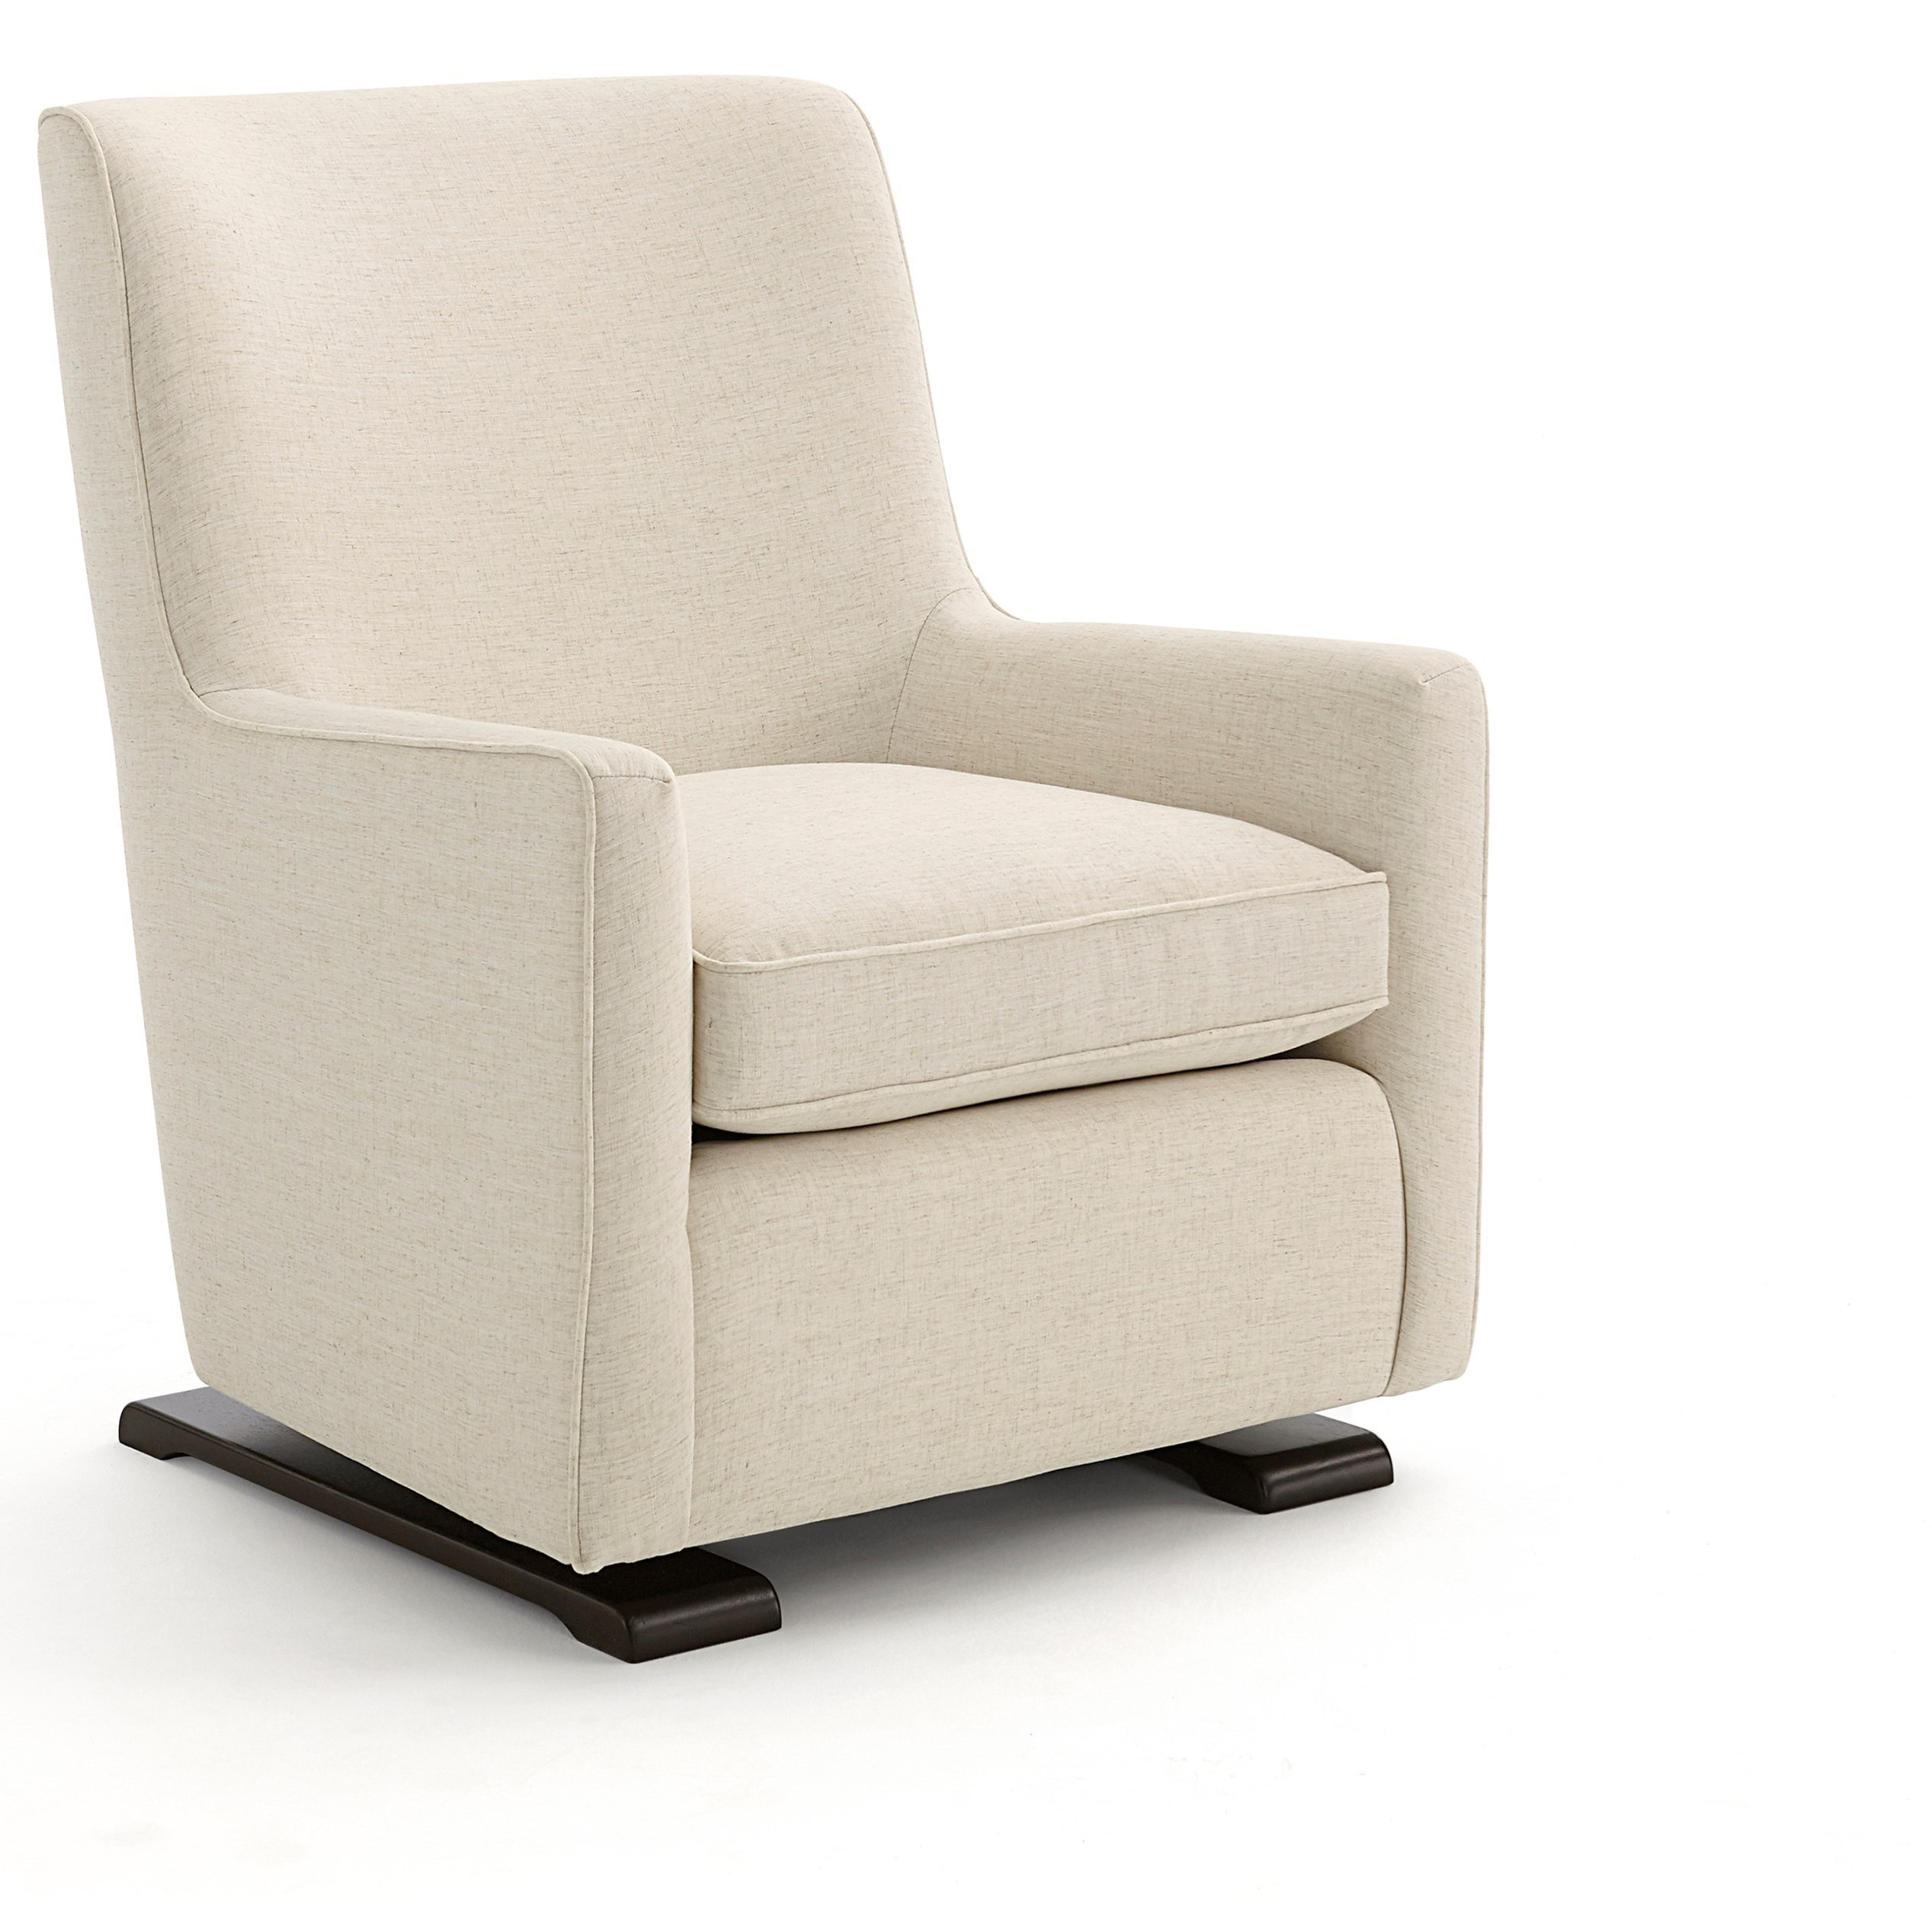 cheap glider chair pictures of barber chairs best home furnishings coral 2237 contemporary swivel gliding with wood runners dunk bright furniture rockers